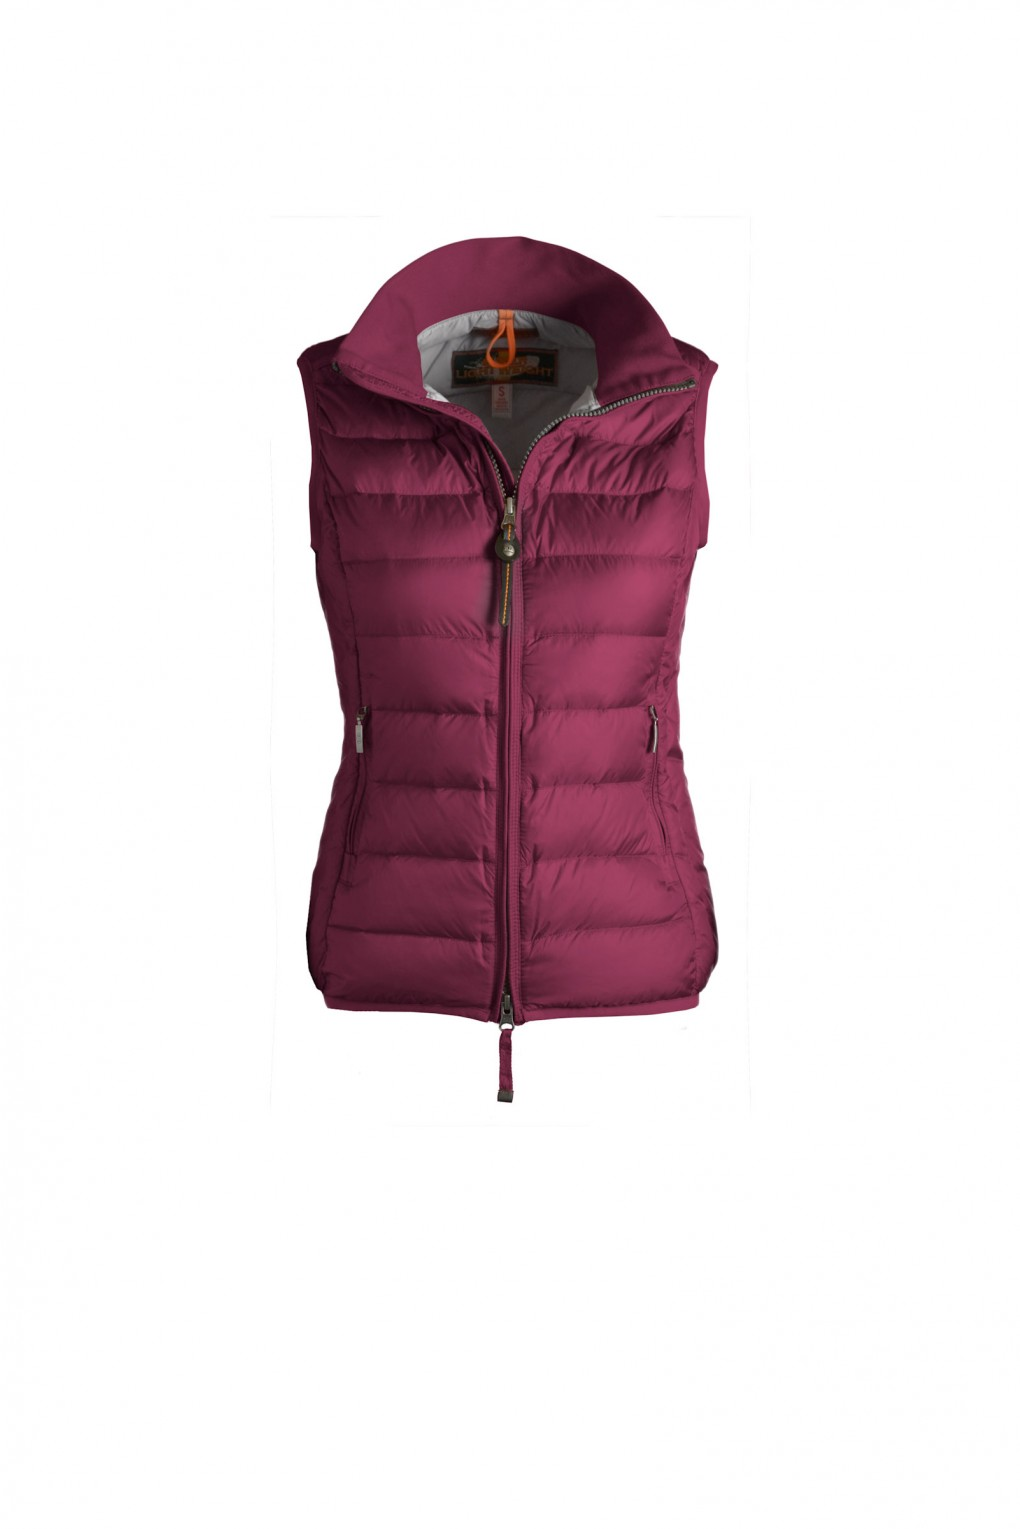 parajumpers DODIE6 woman outerwear Fuchsia